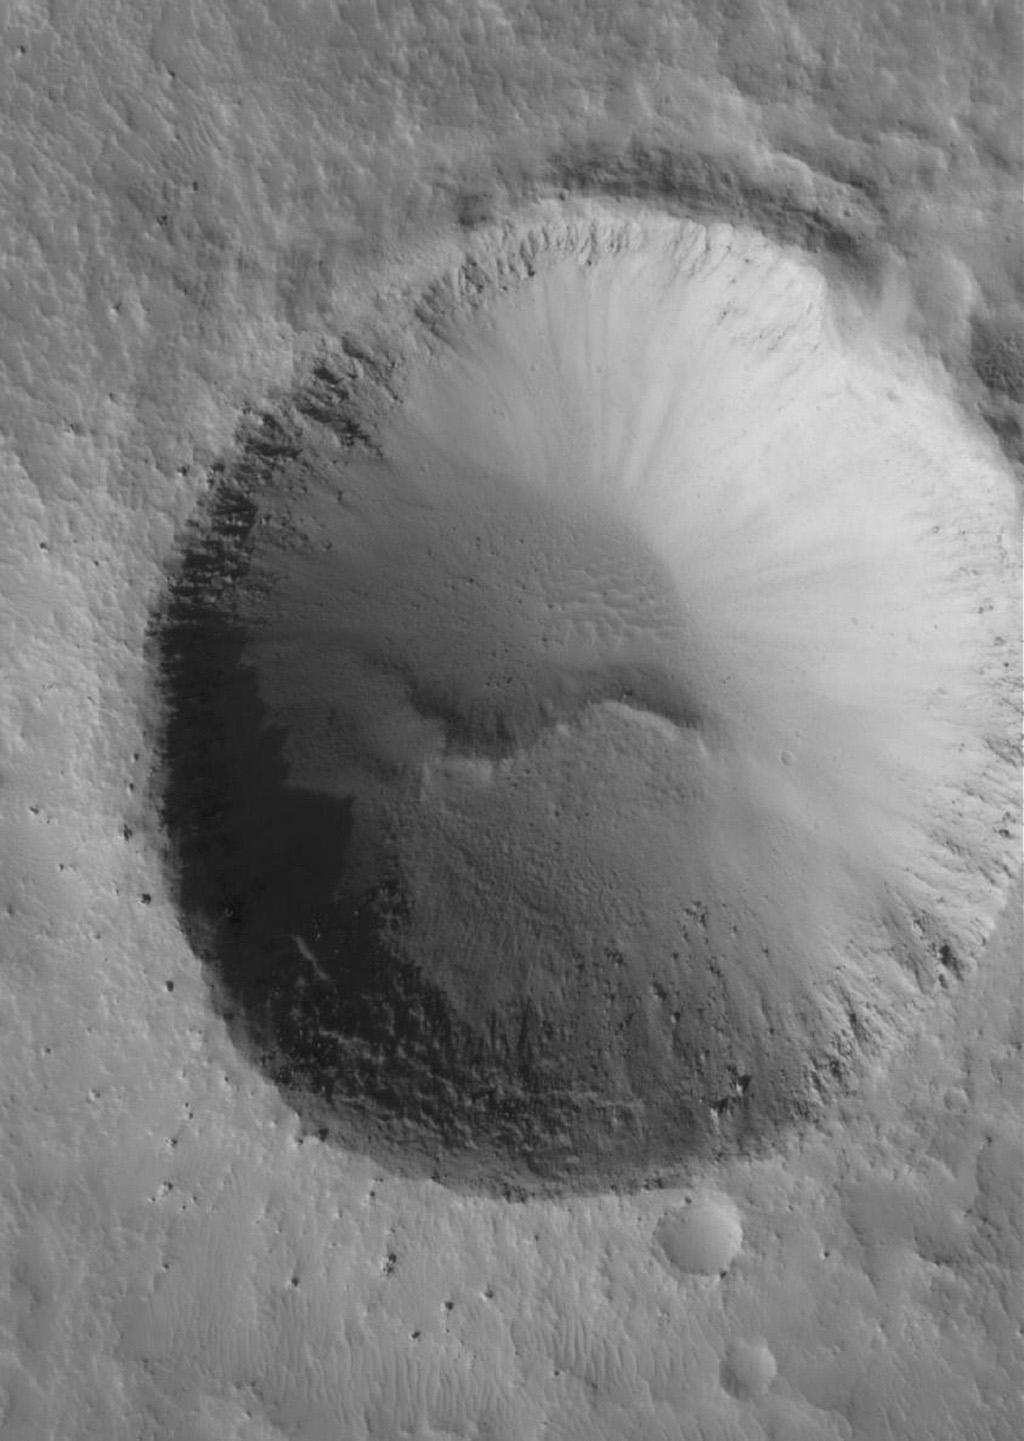 NASA's Mars Global Surveyor shows an impact crater with large boulders along its rim. The crater is located in Tempe Terra on Mars.